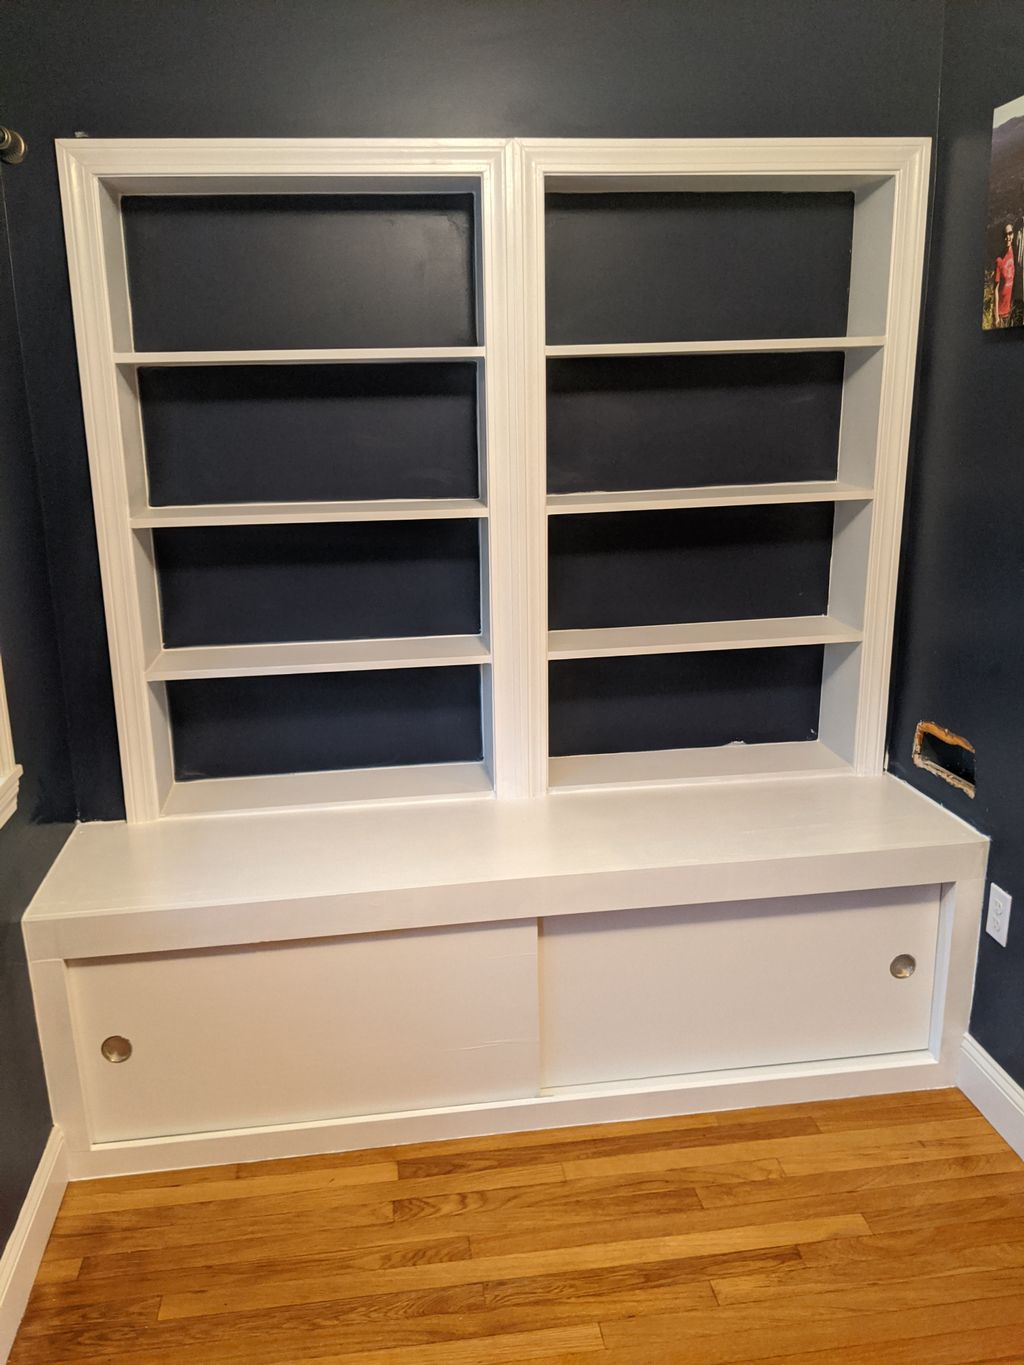 Built-in shelves and storage bench